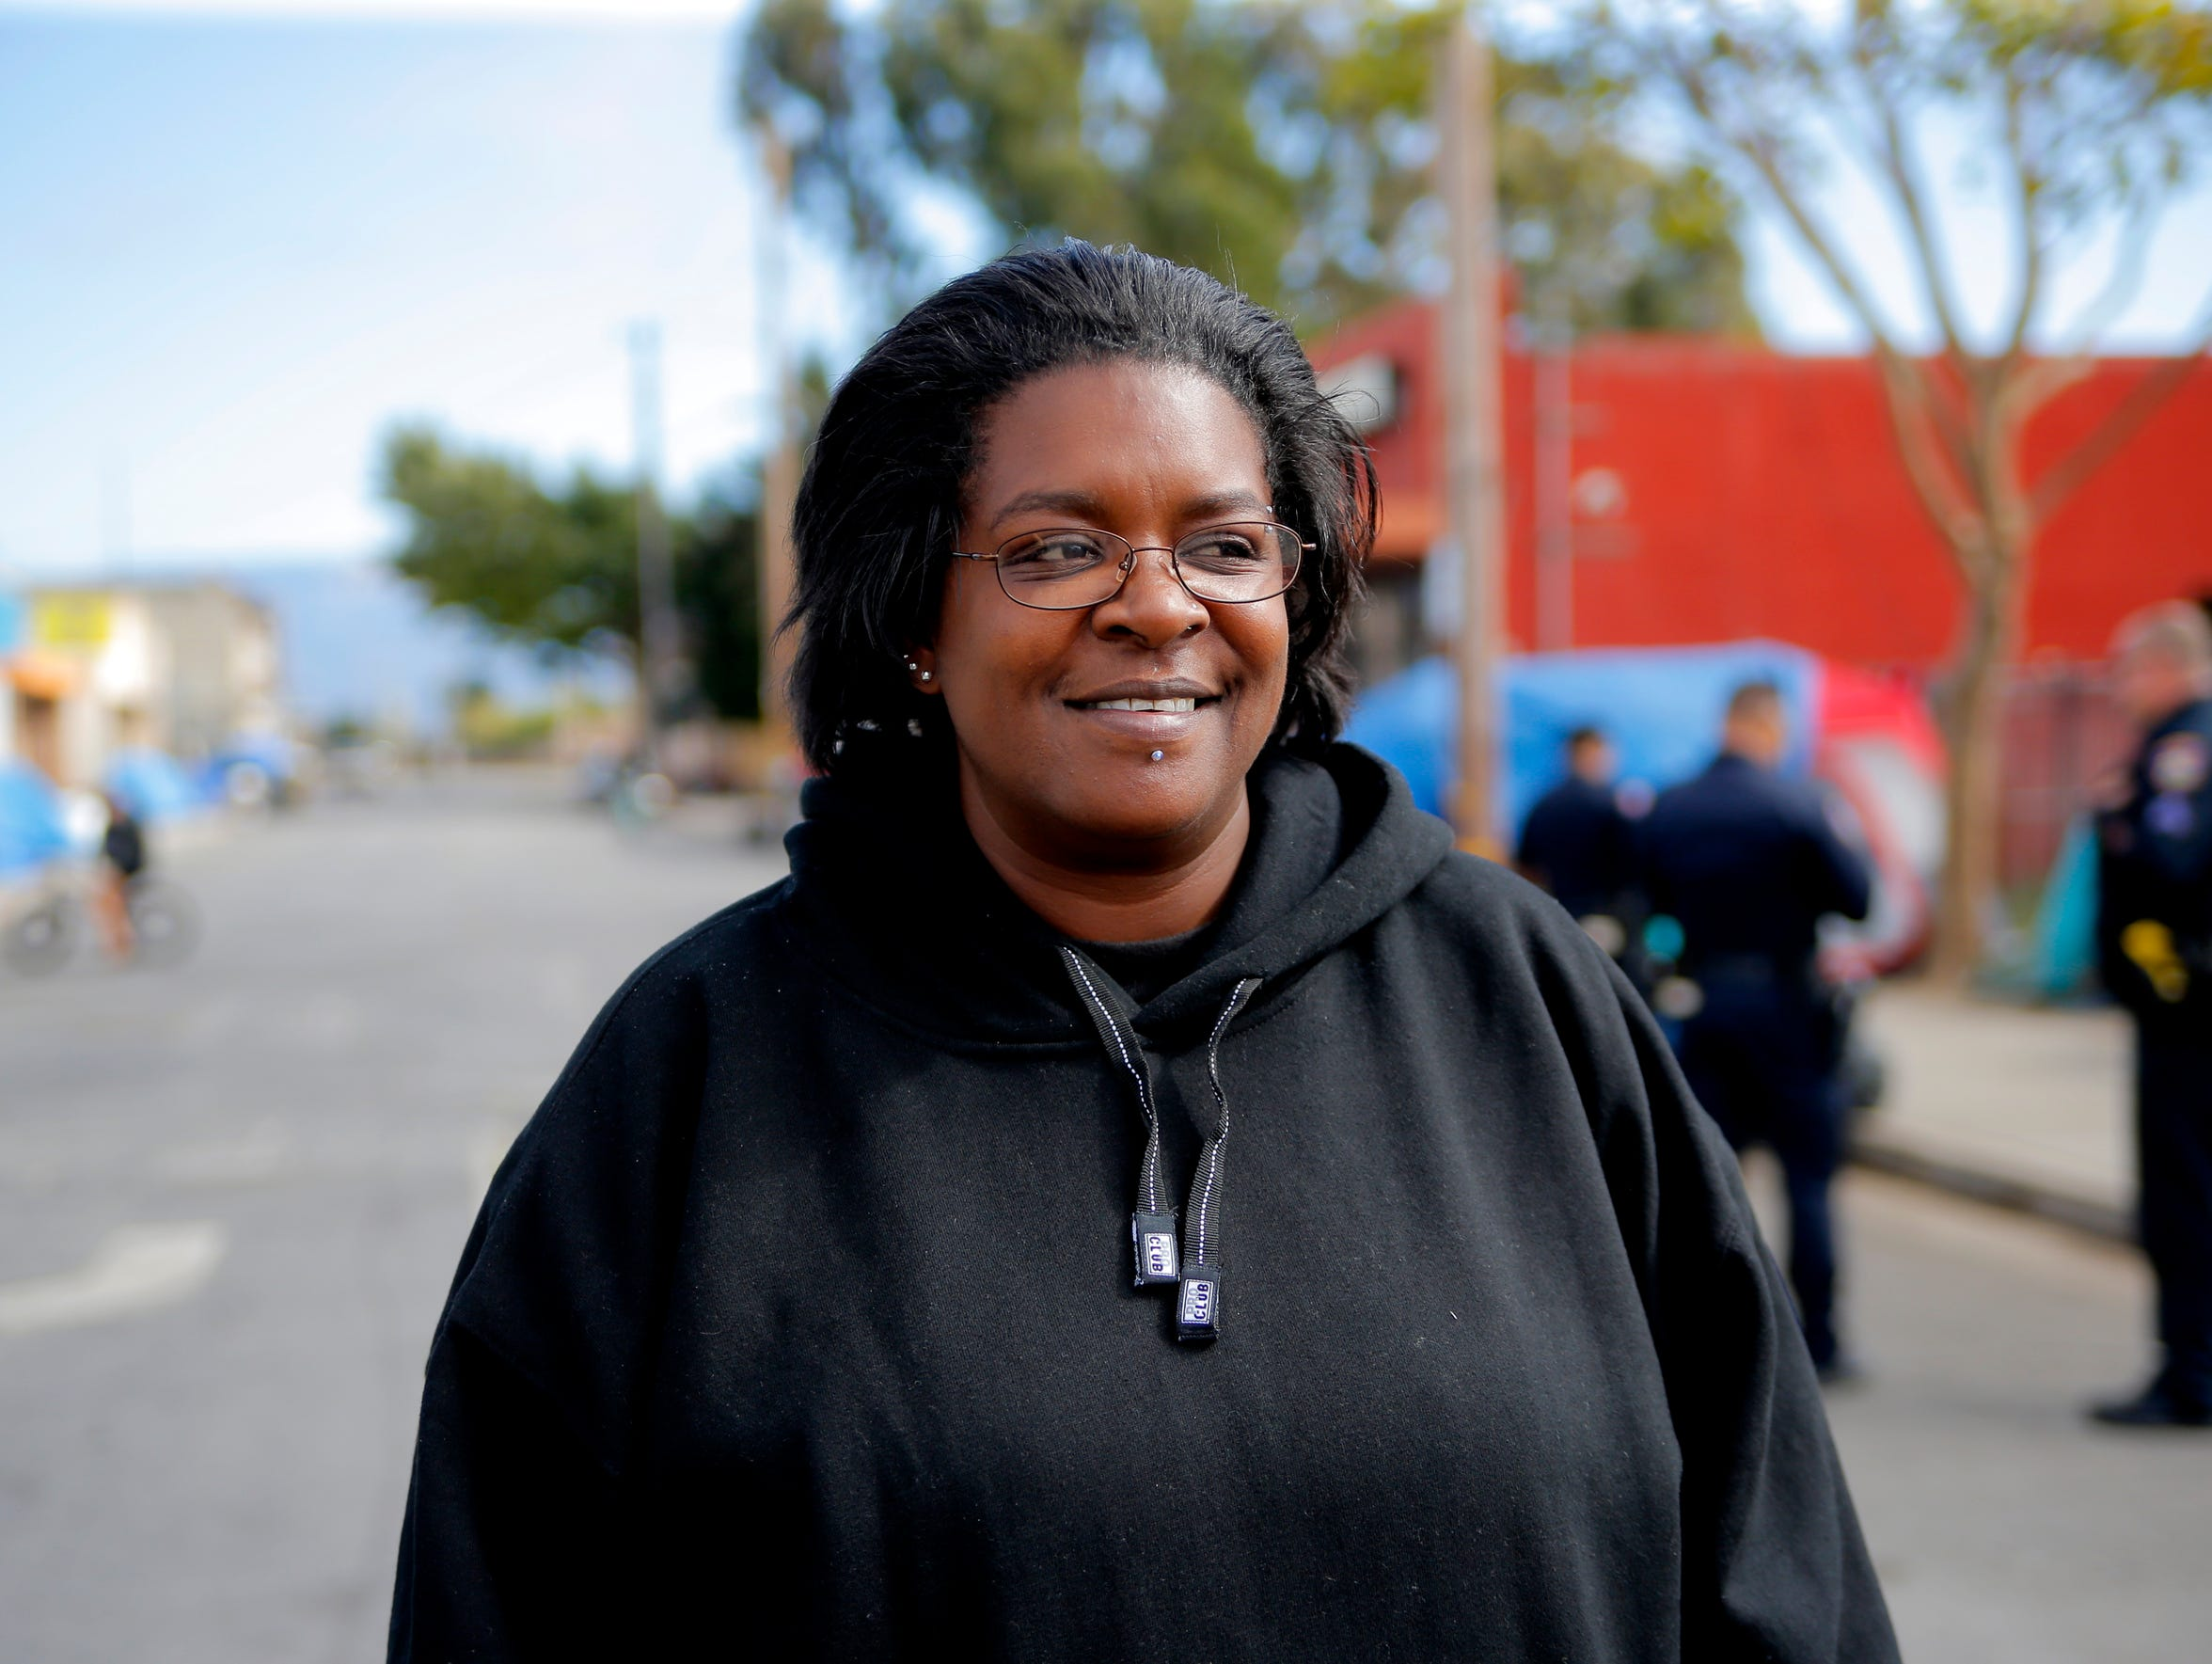 Yolanda Harraway lived in Chinatown for years until